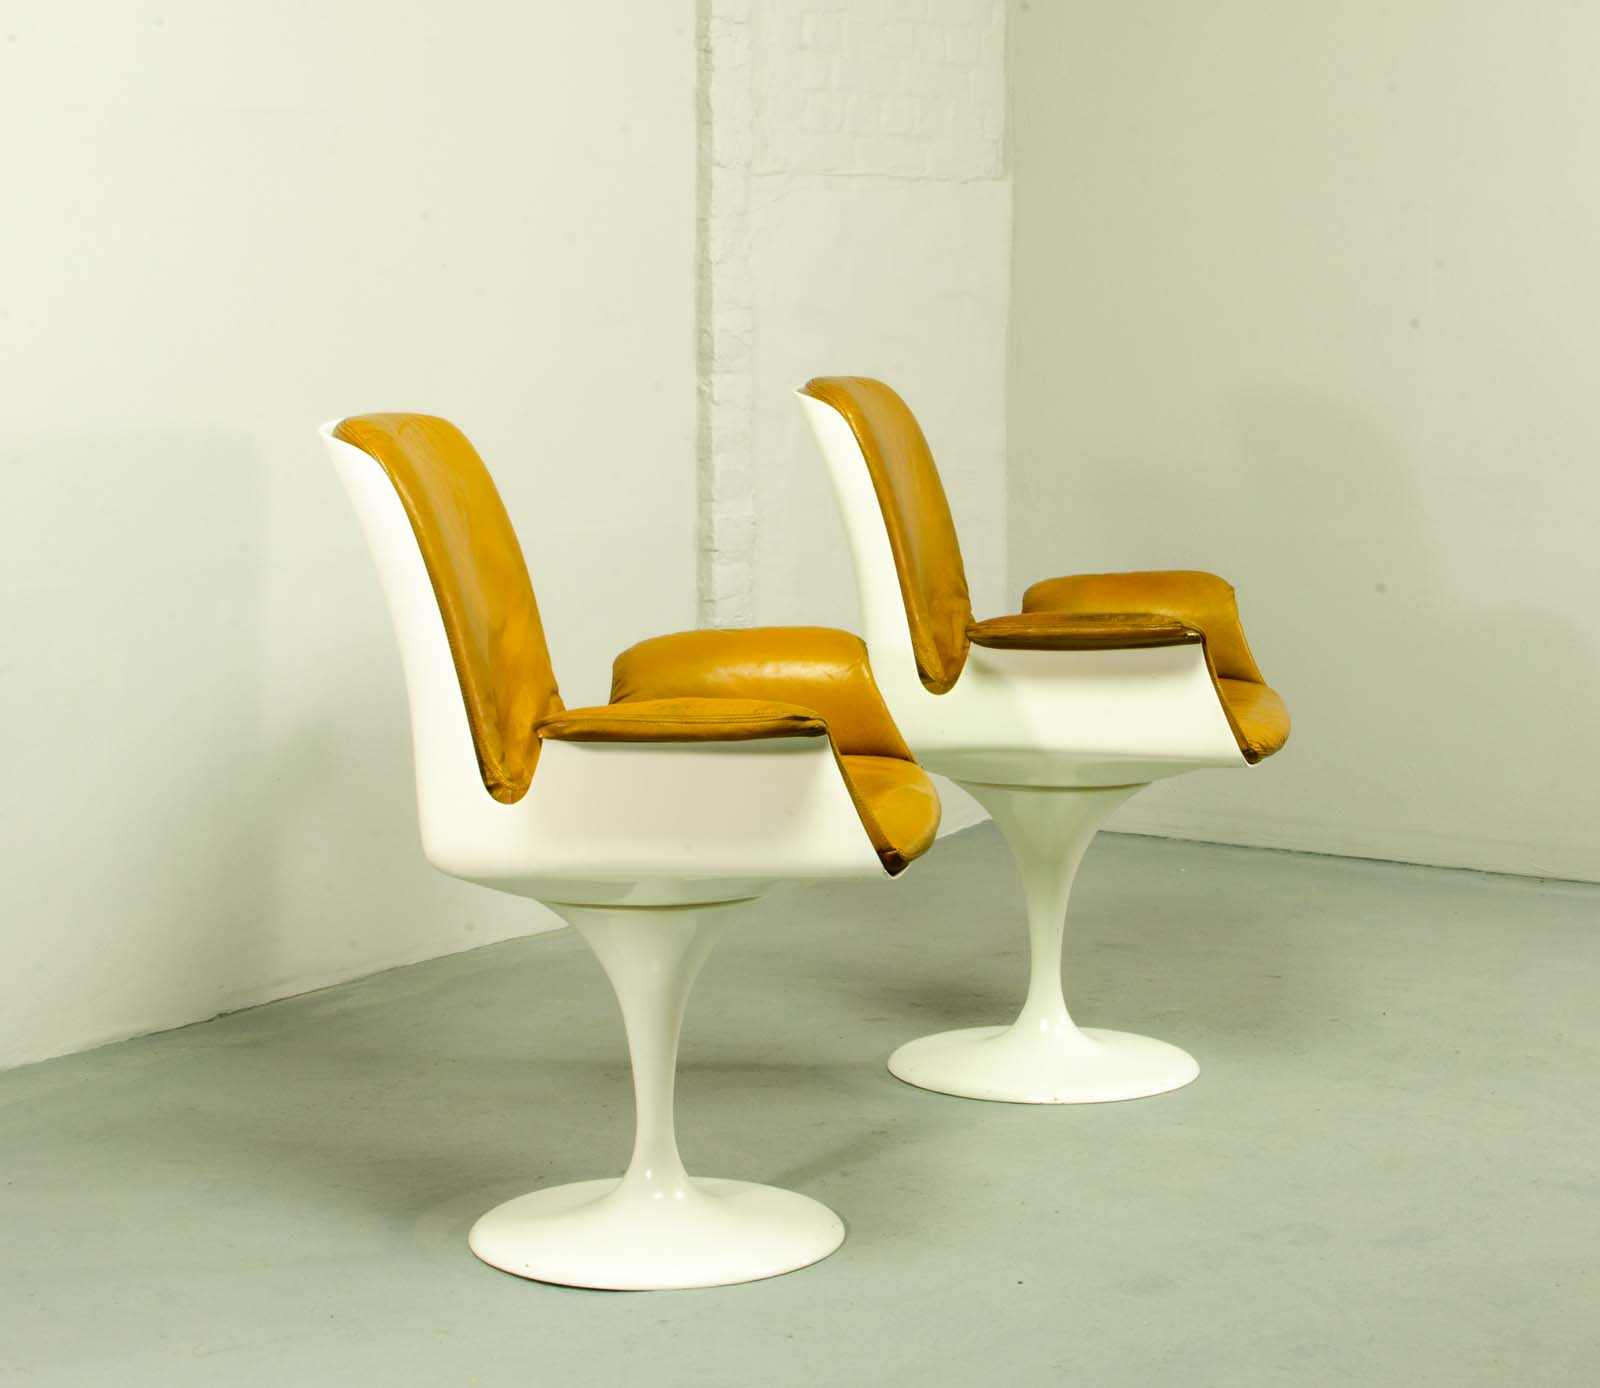 Mid Century Tulip Swivel Chairs With Armrests In Style Of Eero Saarinen /  Knoll